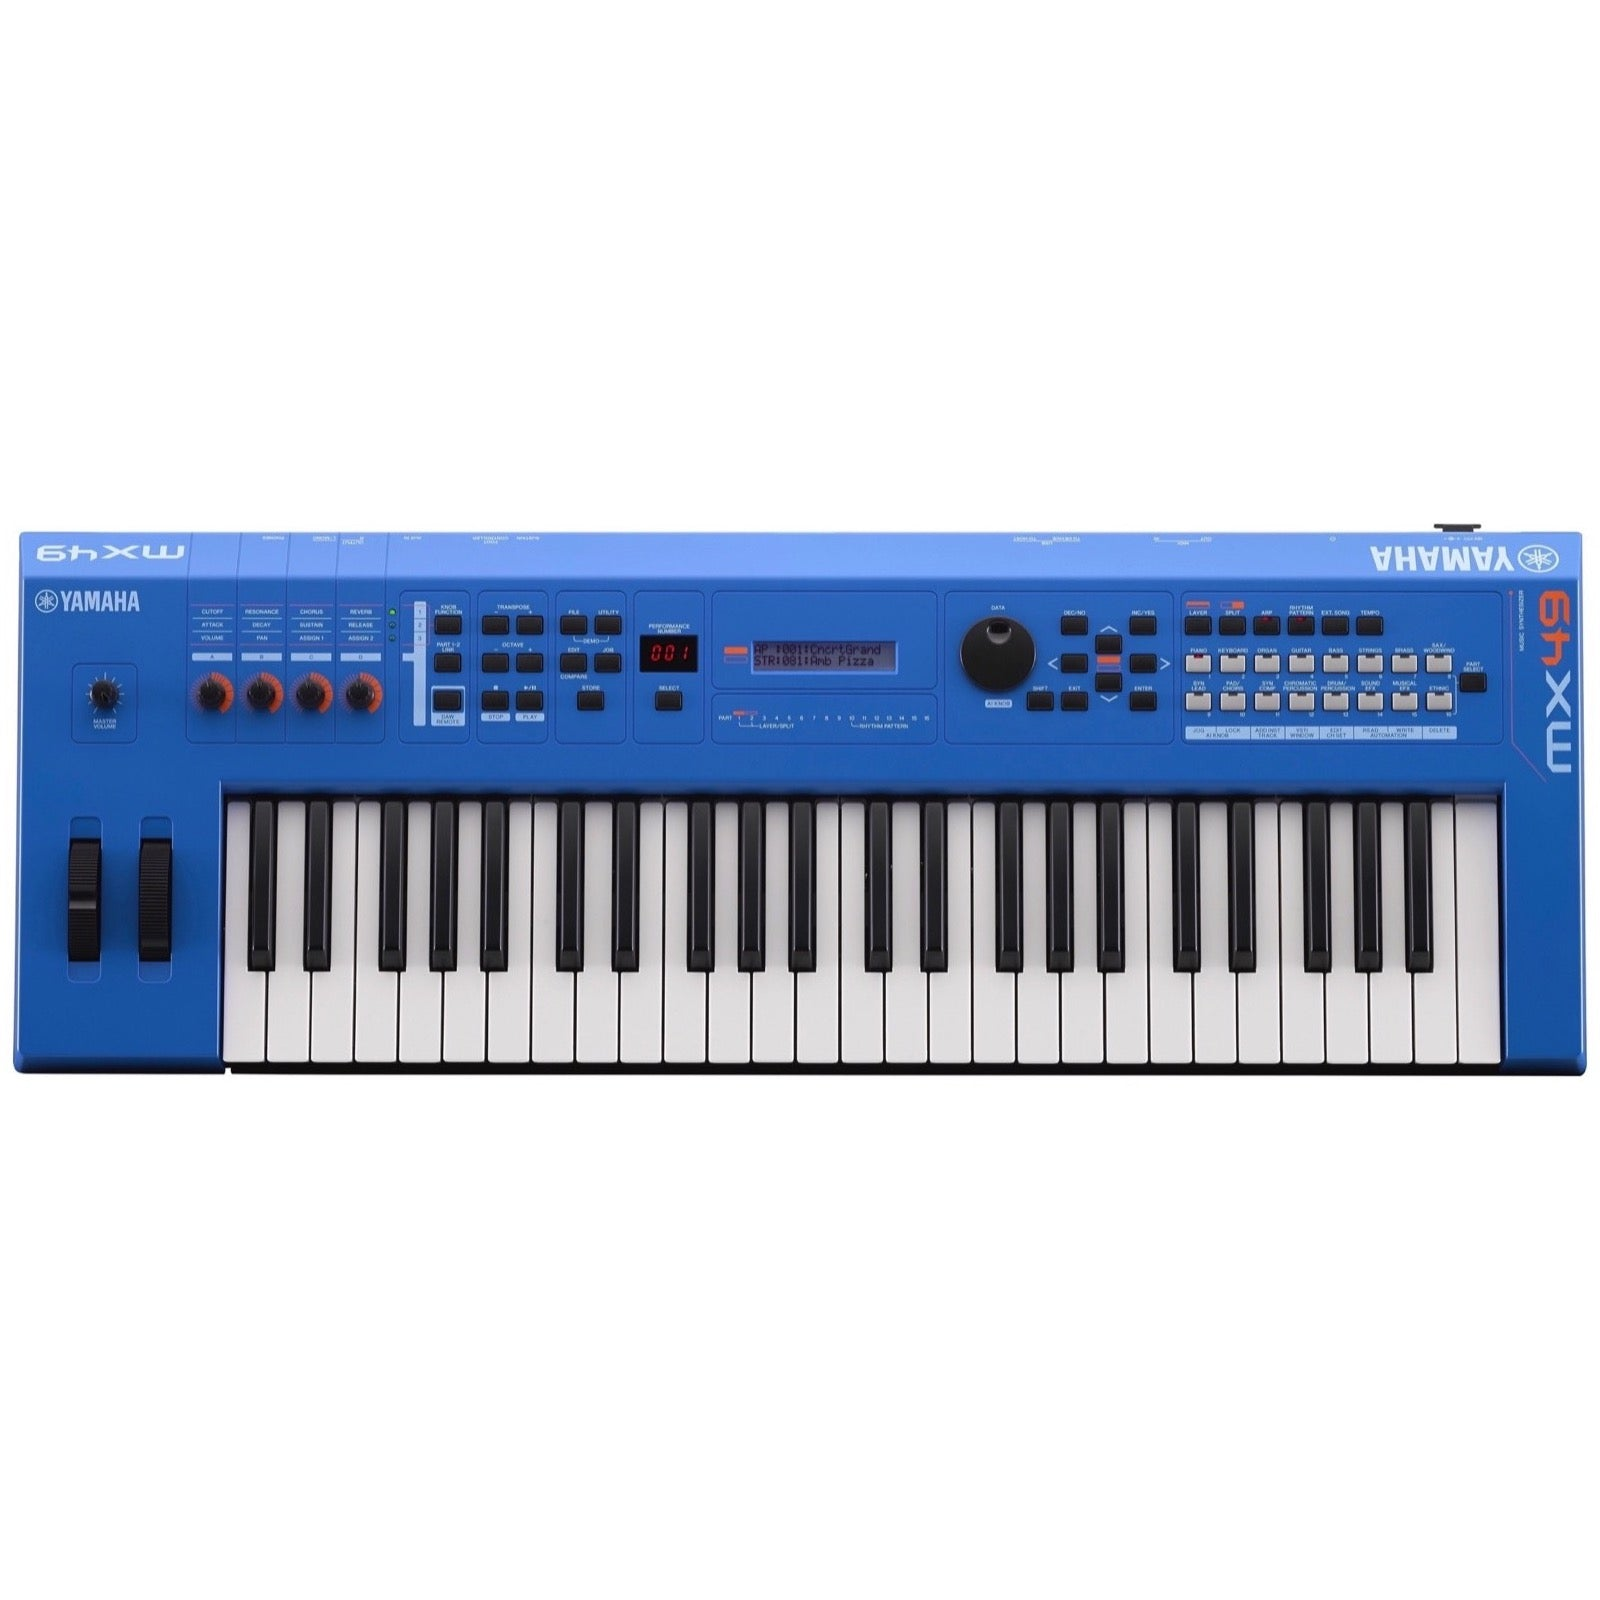 Yamaha MX49 v2 Keyboard Synthesizer, 49-Key, Blue